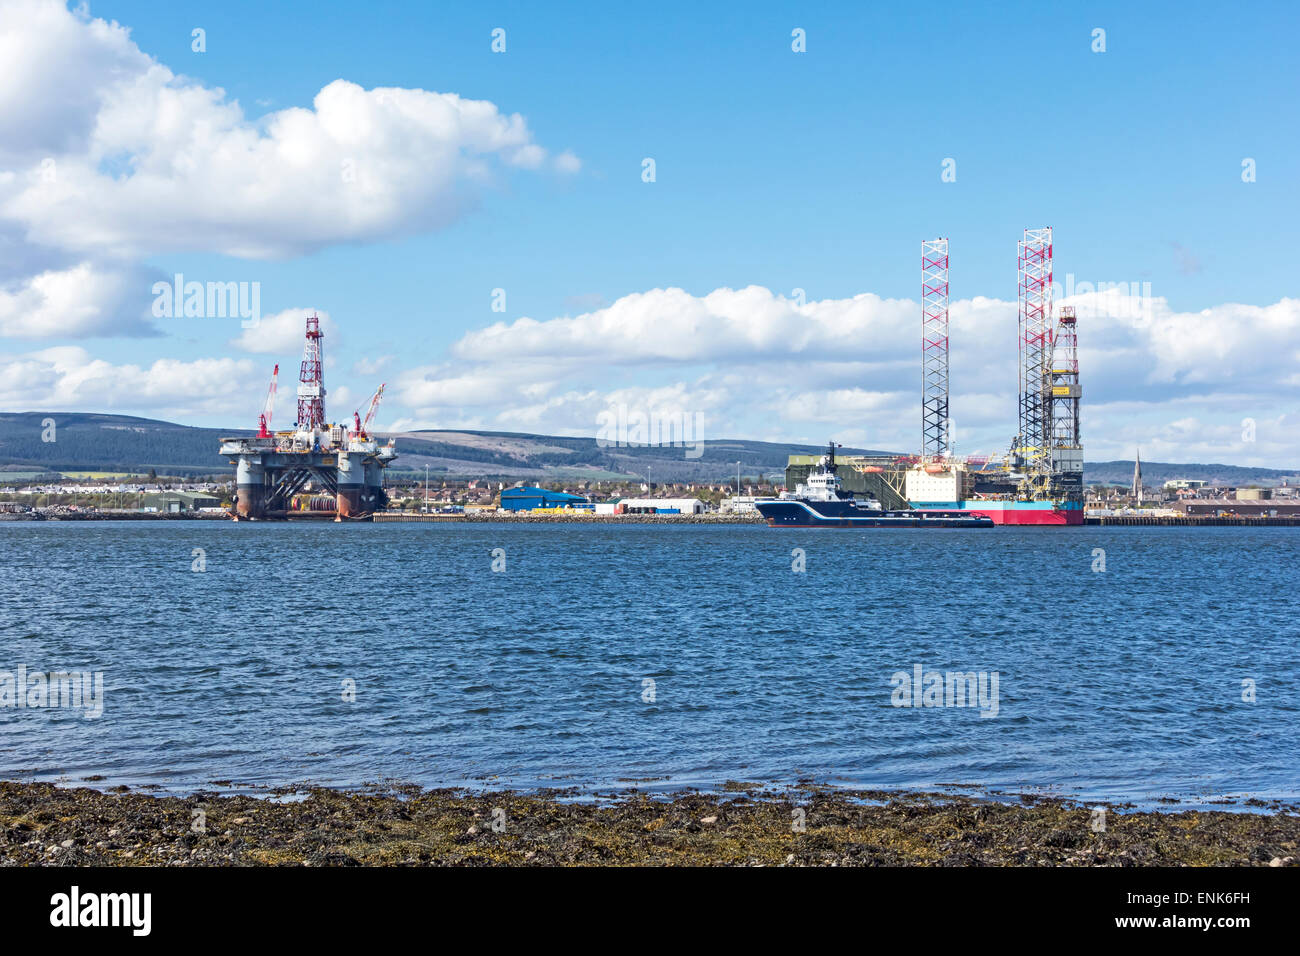 Rig Ocean Valiant, Highland Endurance & Maersk Resilient moored at Invergordon in the Cromarty Firth  Highland - Stock Image